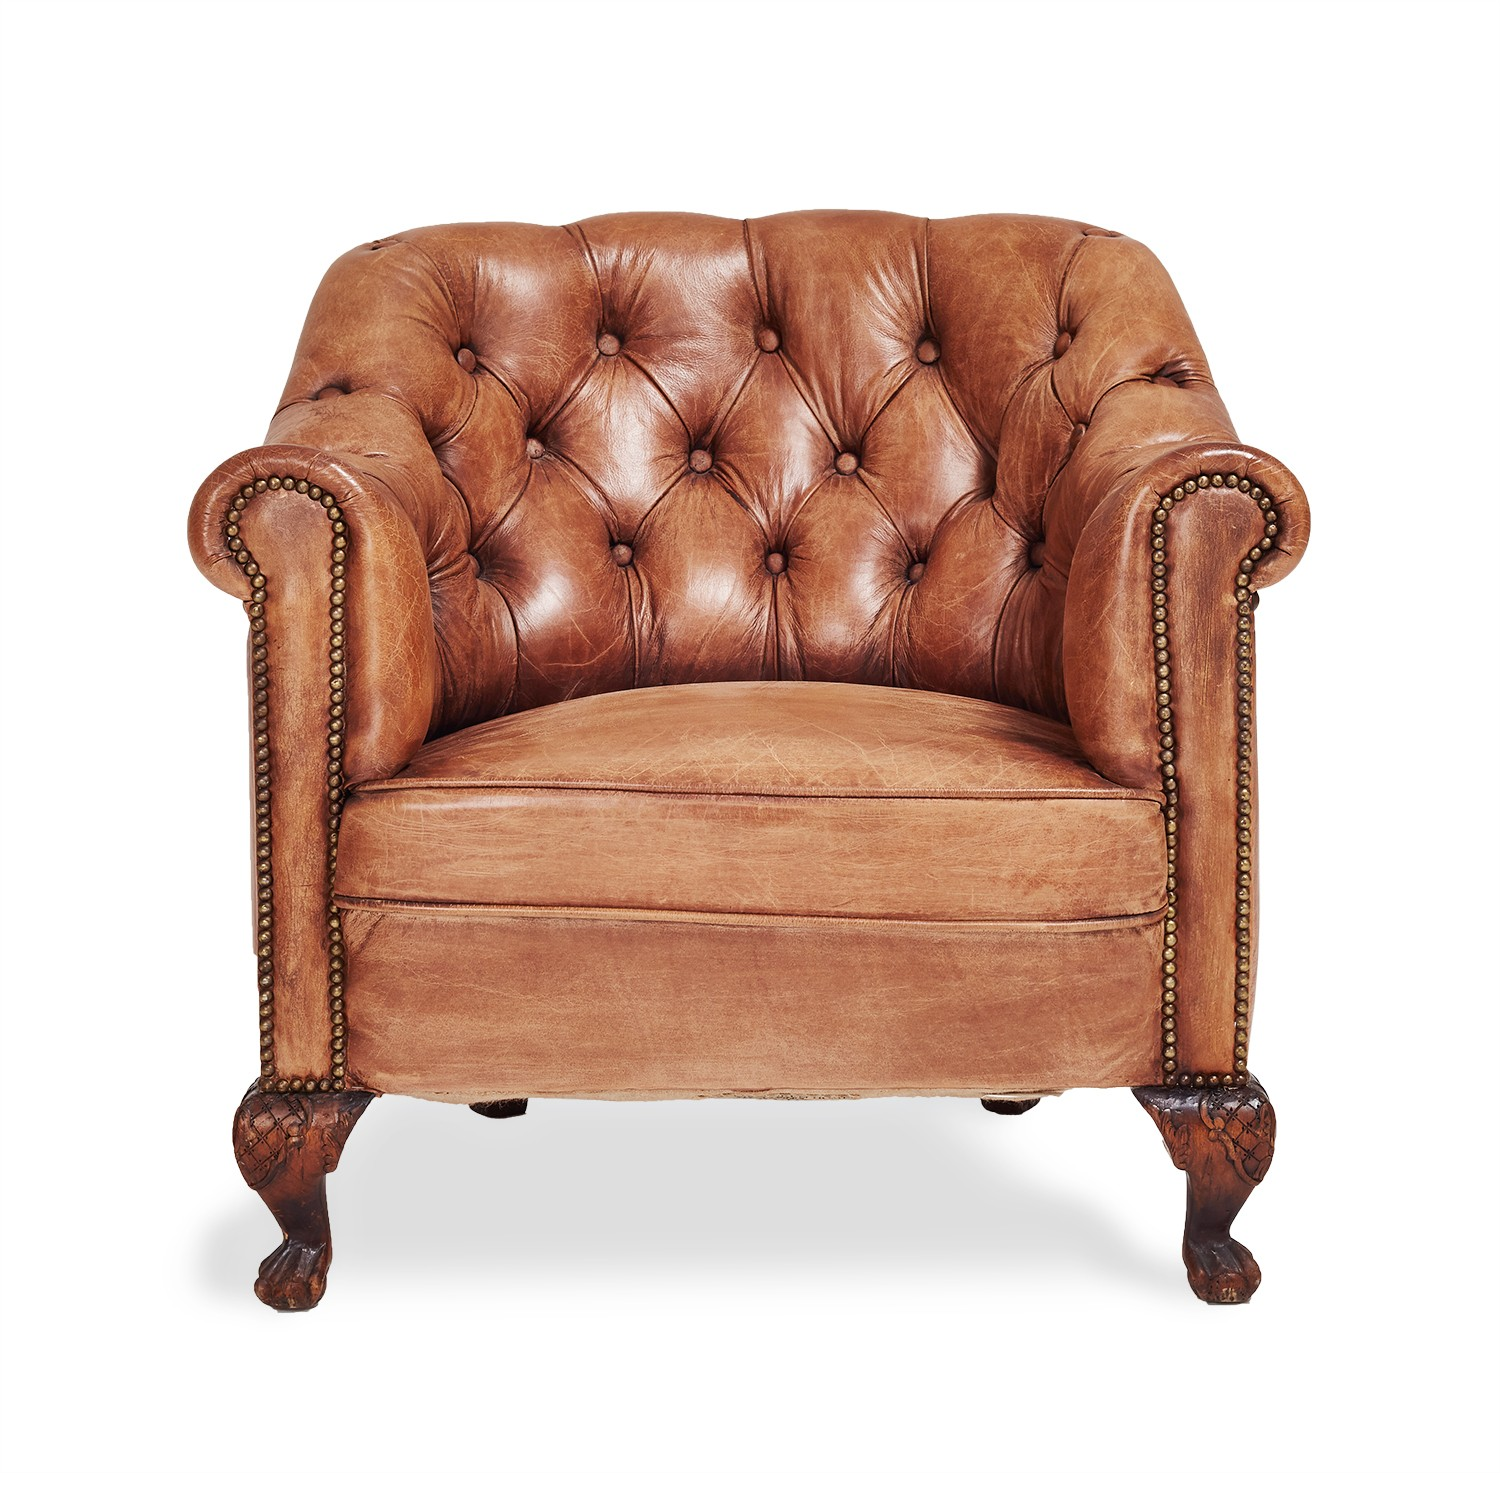 Chesterfield Sessel-chefsessel